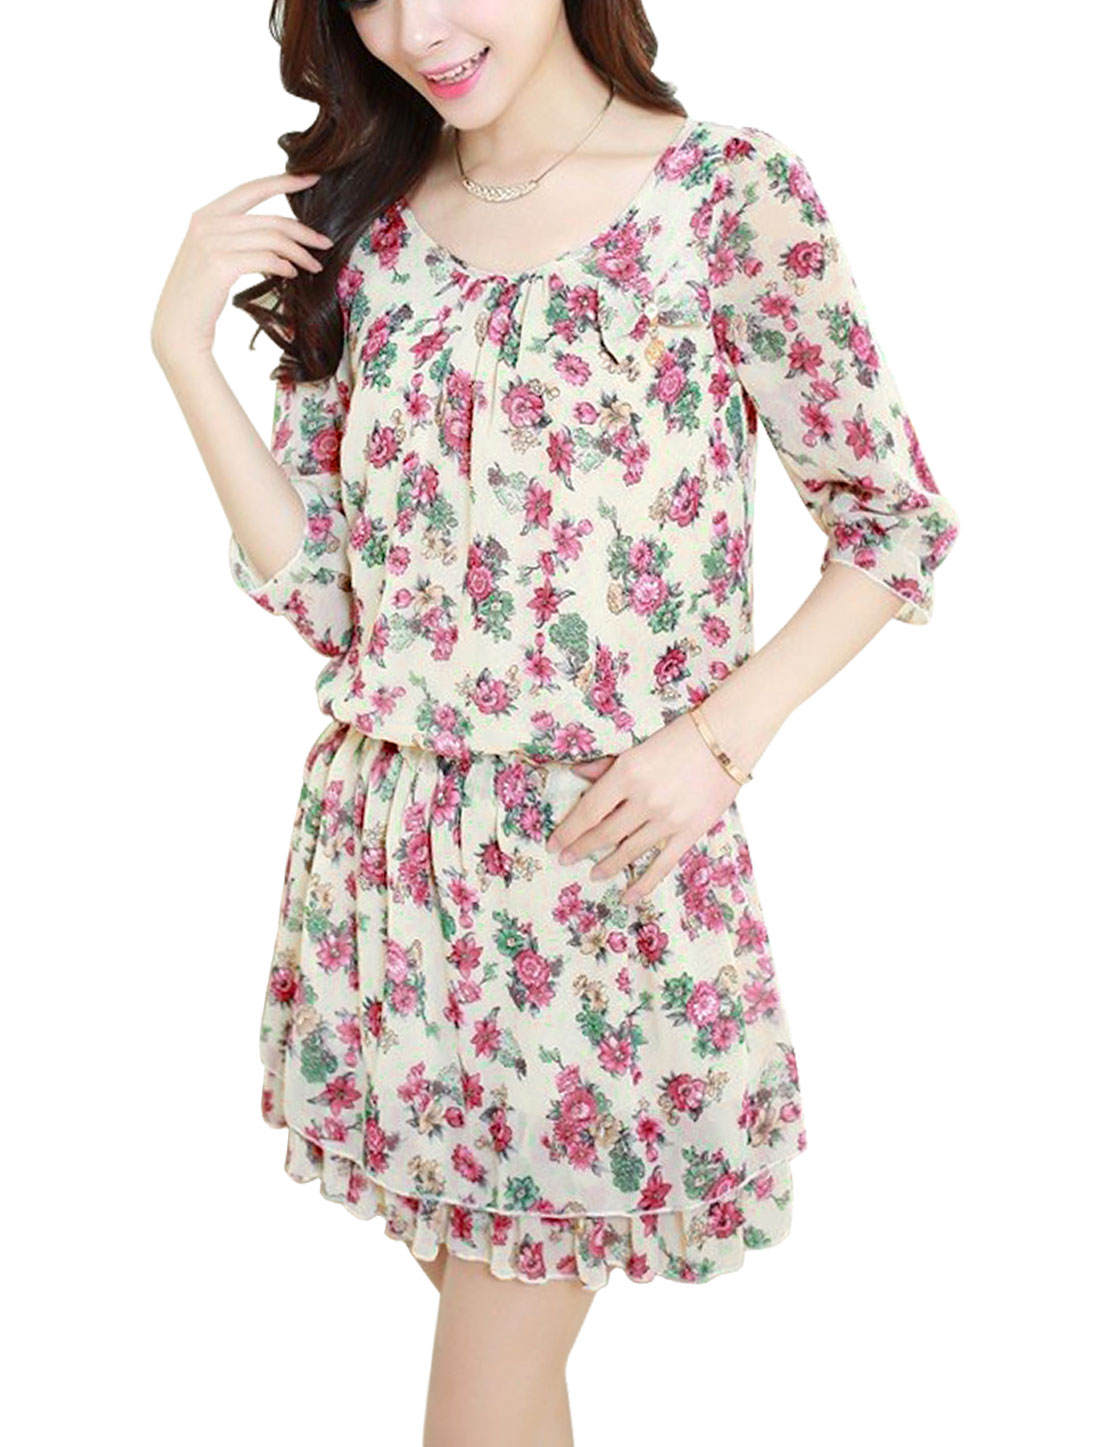 Lady Round Neck Half Sleeve Floral Prints Lining Dress Beige Fuchsia M